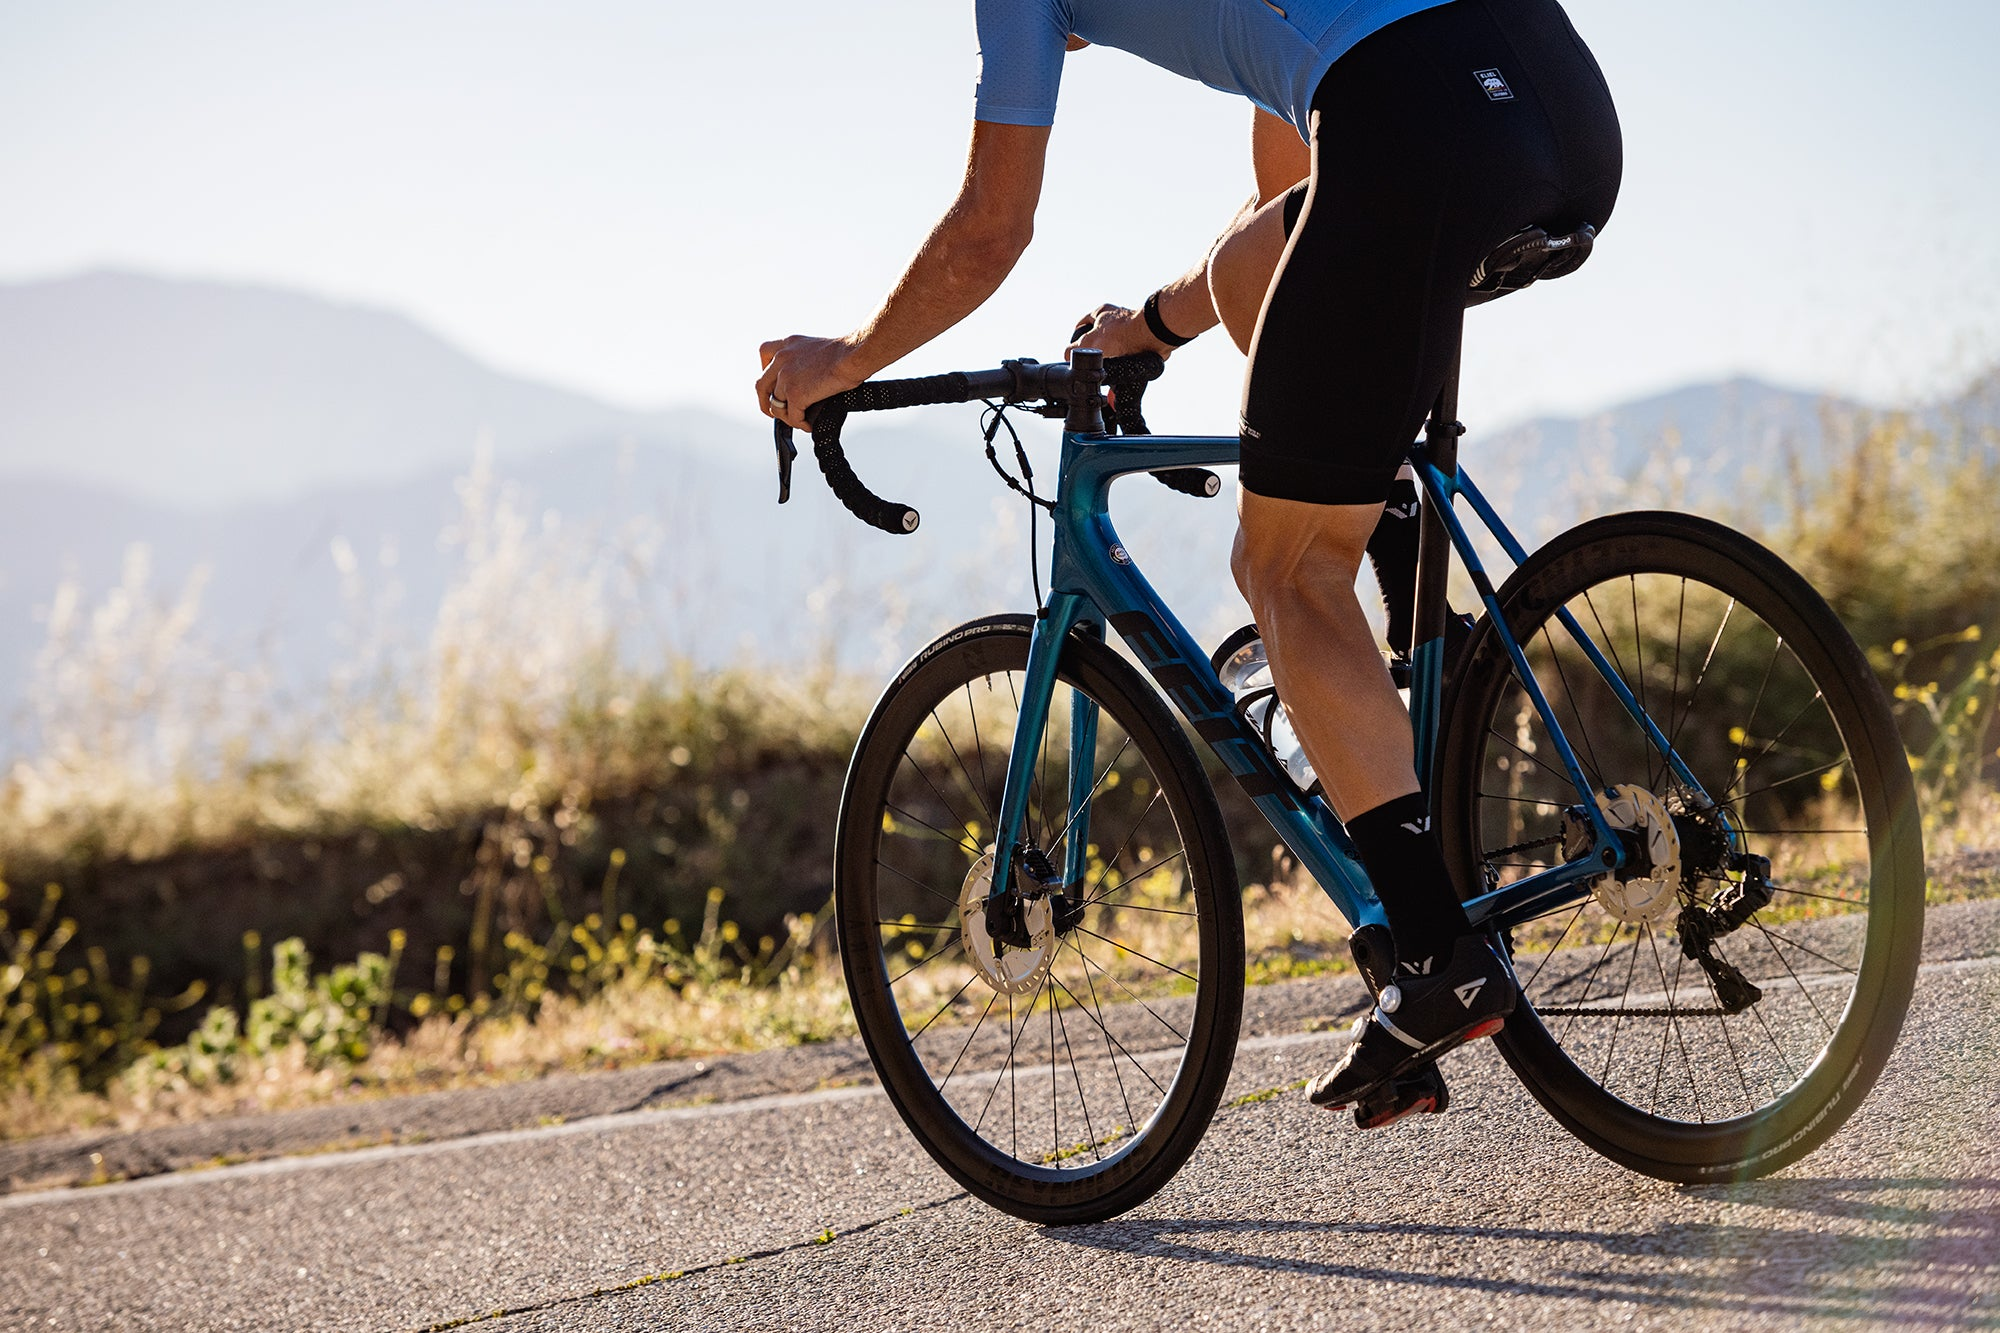 Felt Bicycles | Performance Bicycles Designed & Tested in